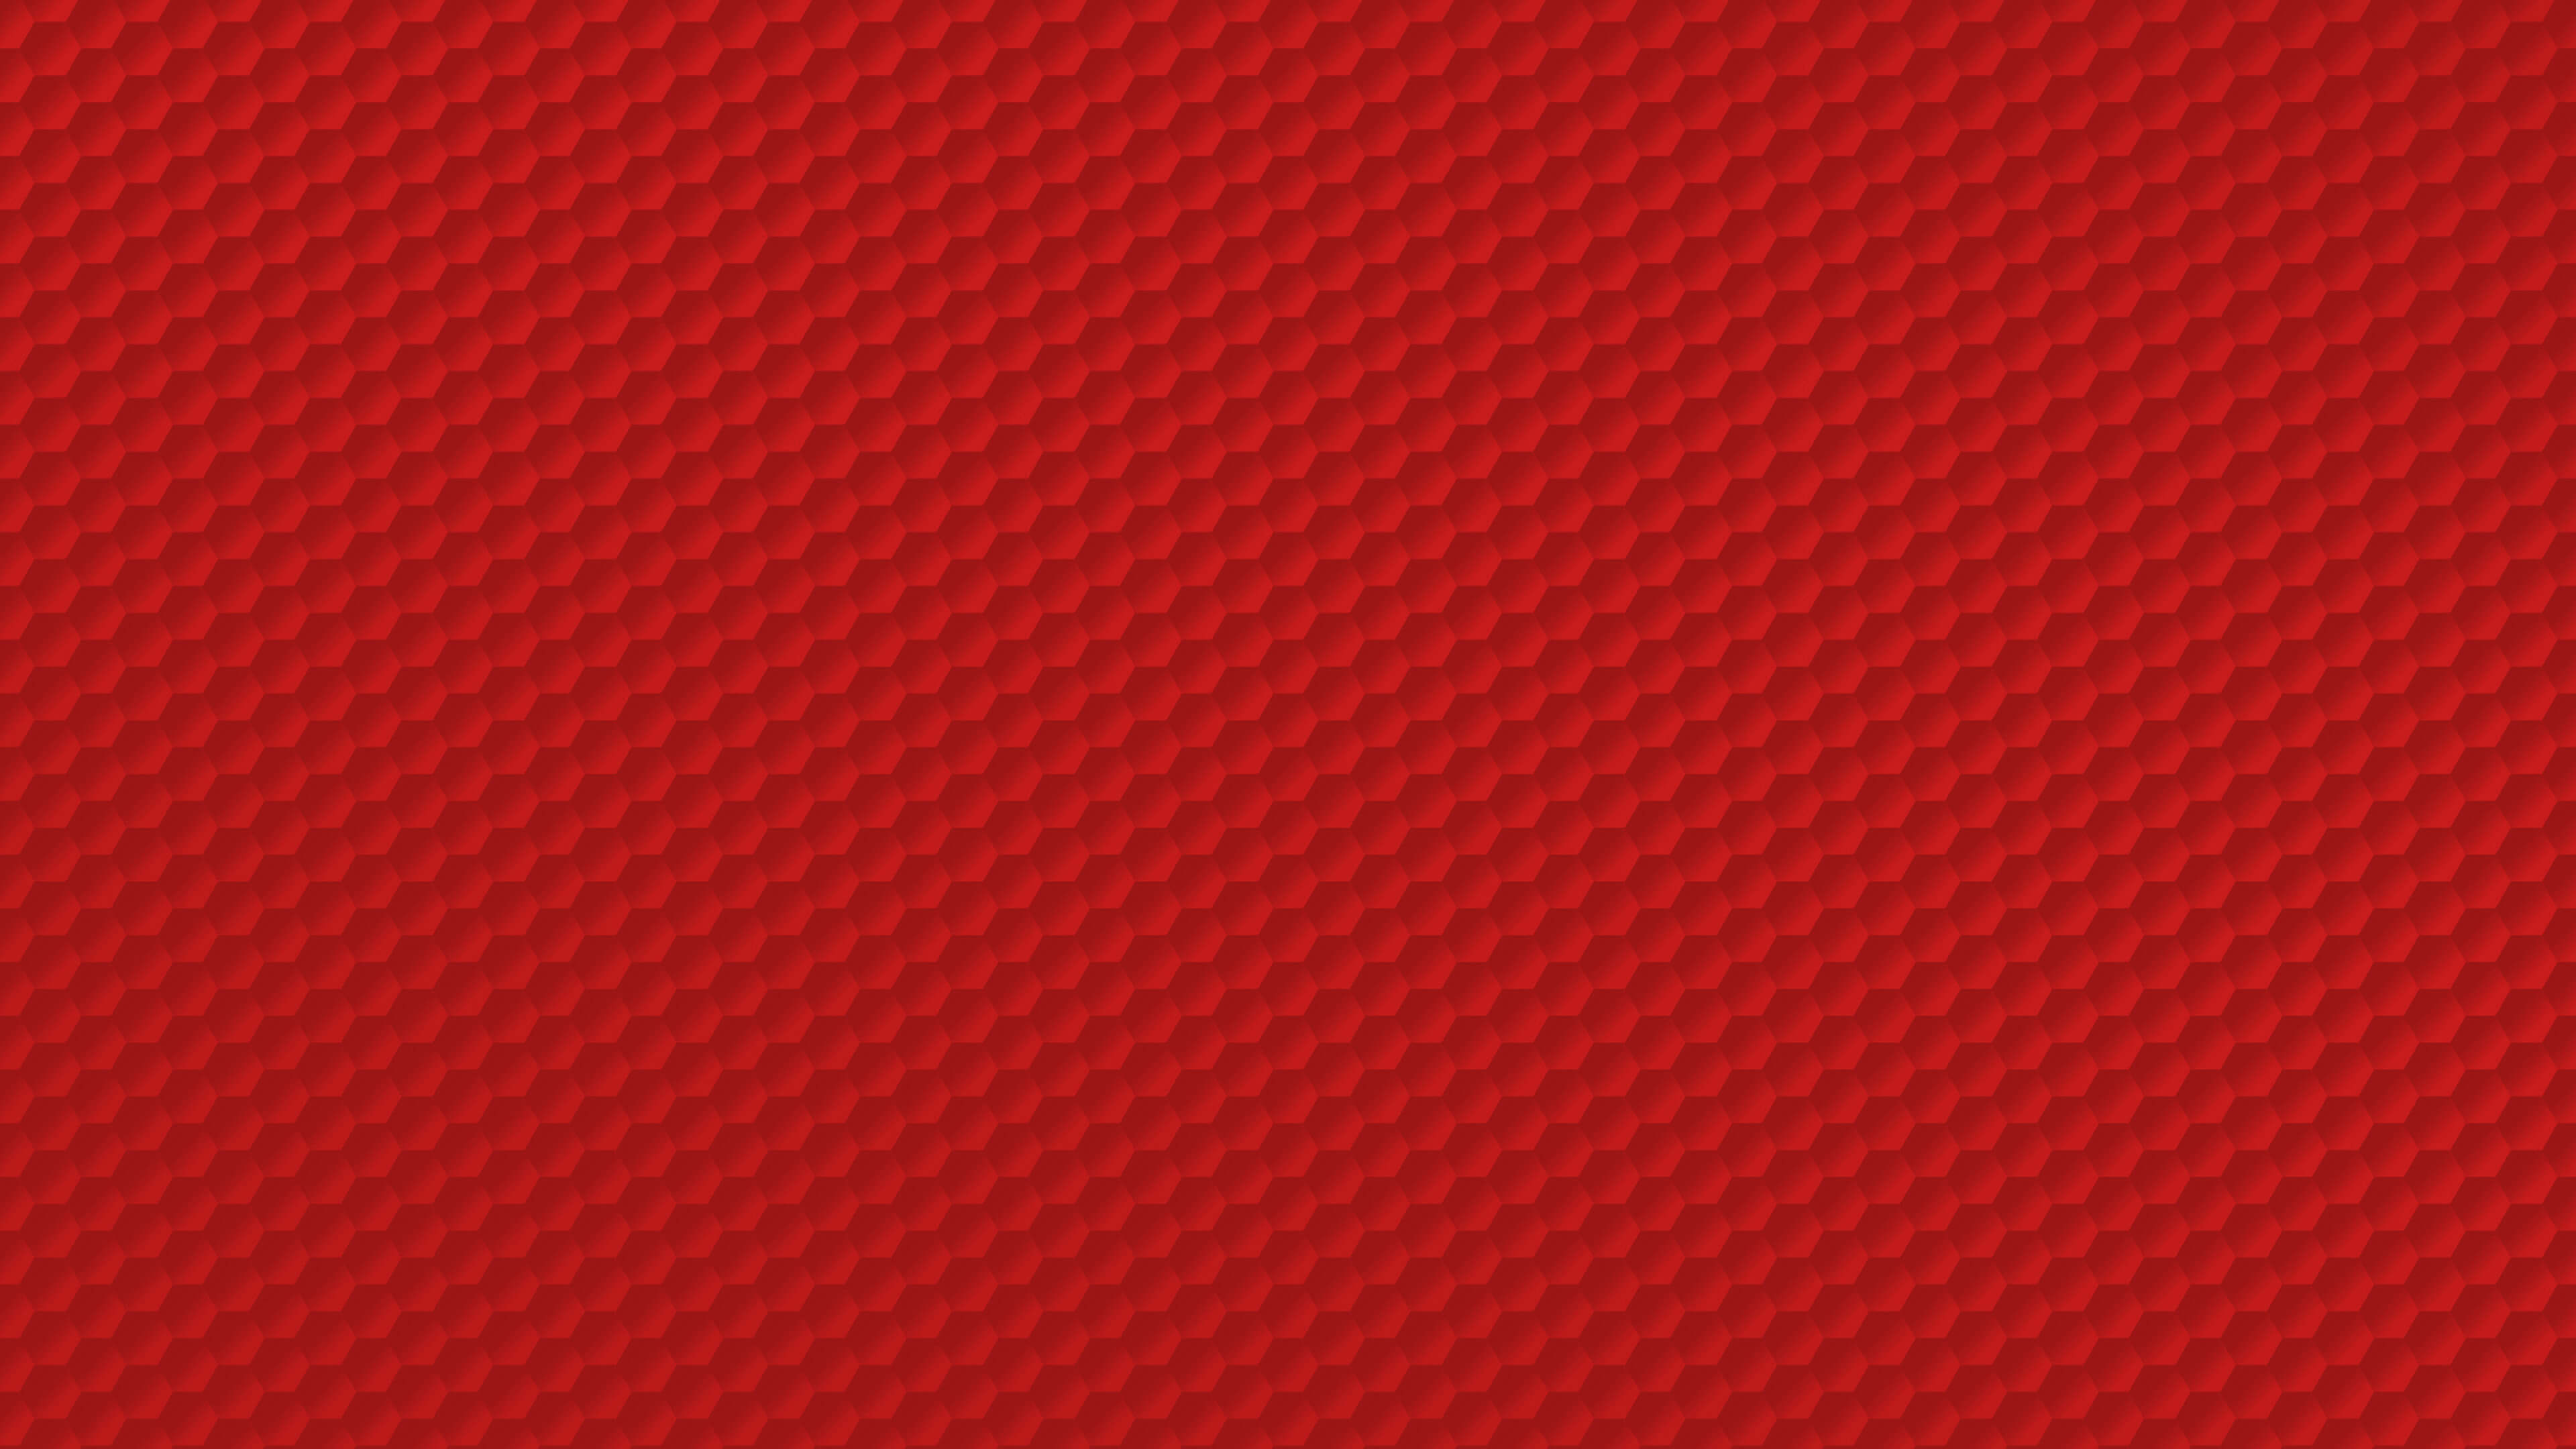 Red Honeycomb Pattern 4k Wallpapers Circle Of Friends